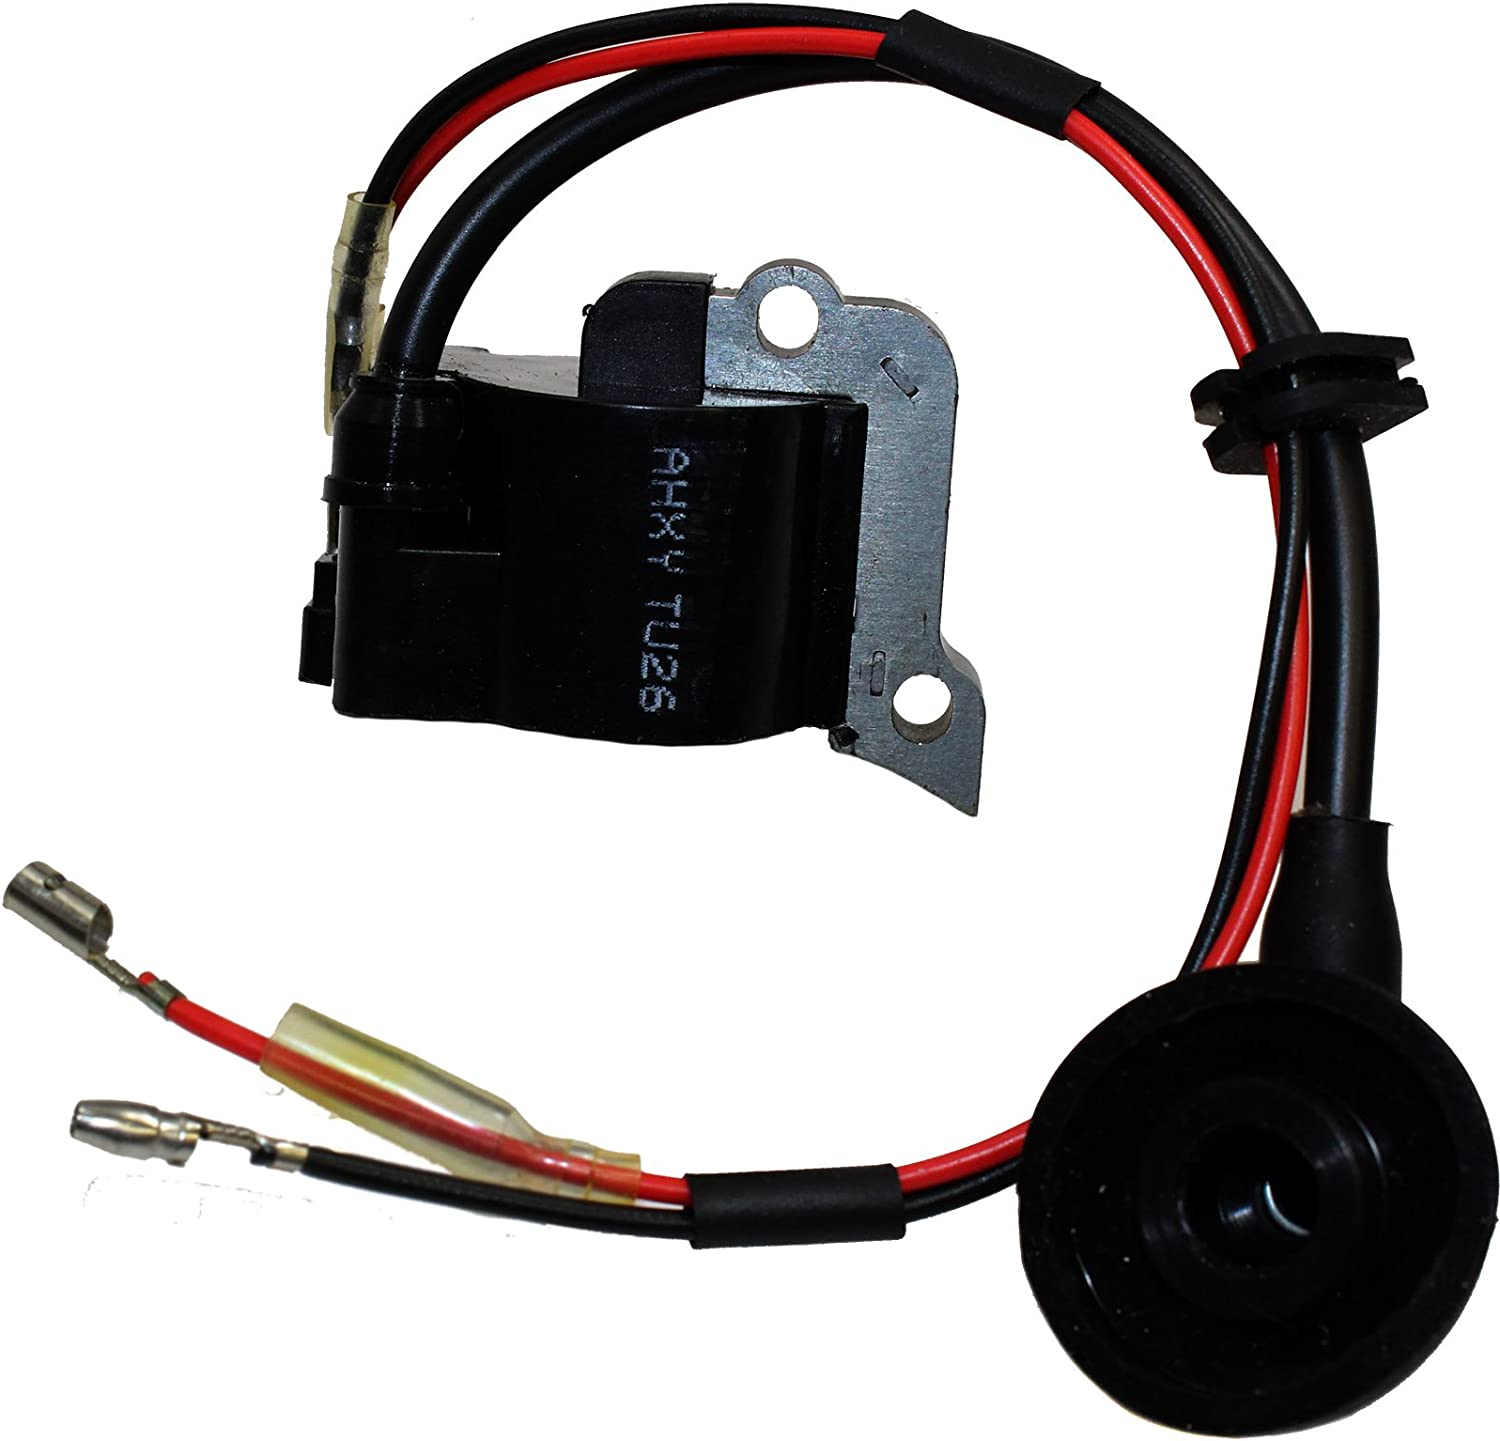 IGNITION COIL FOR ECHO EB650 BACKPACK BLOWER REPLACE CHAINSAW